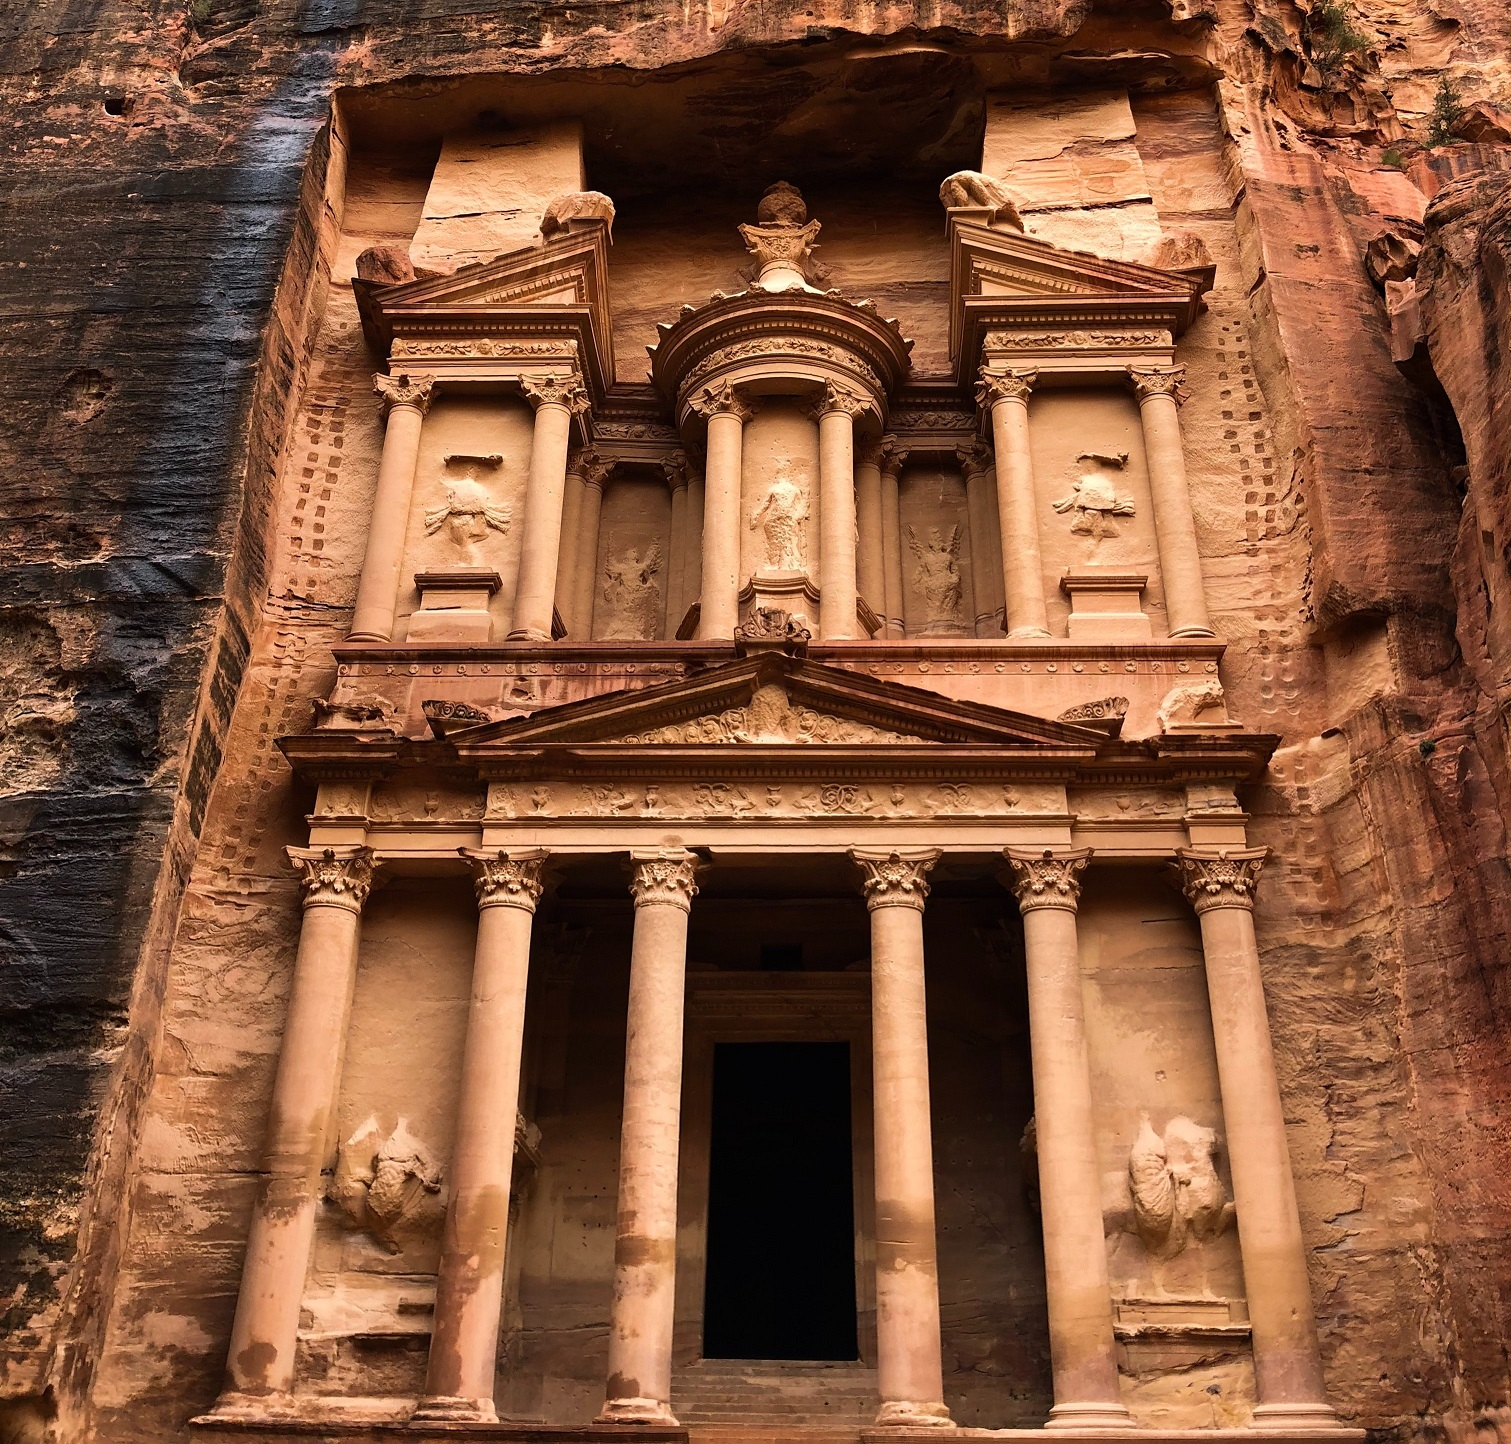 The Ancient City of Petra